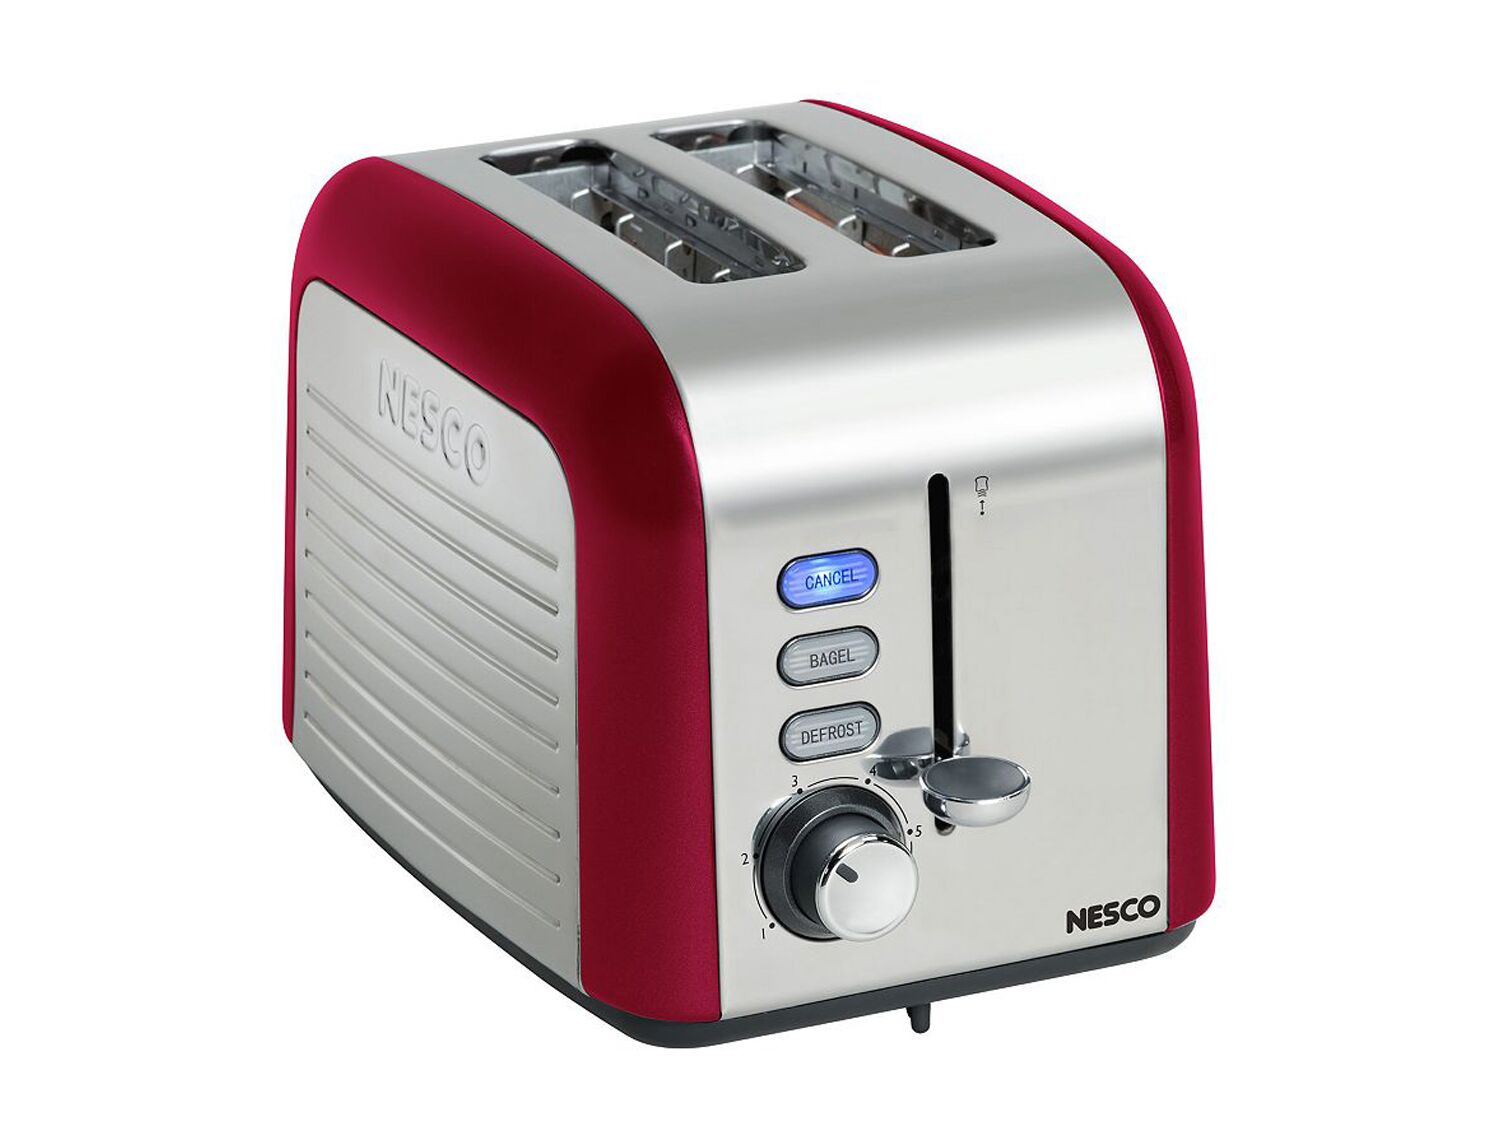 decker hot and dog slice black toaster ovens stainless dp com amazon convectioncuisinart hamilton beach calphalon toasters breville steel